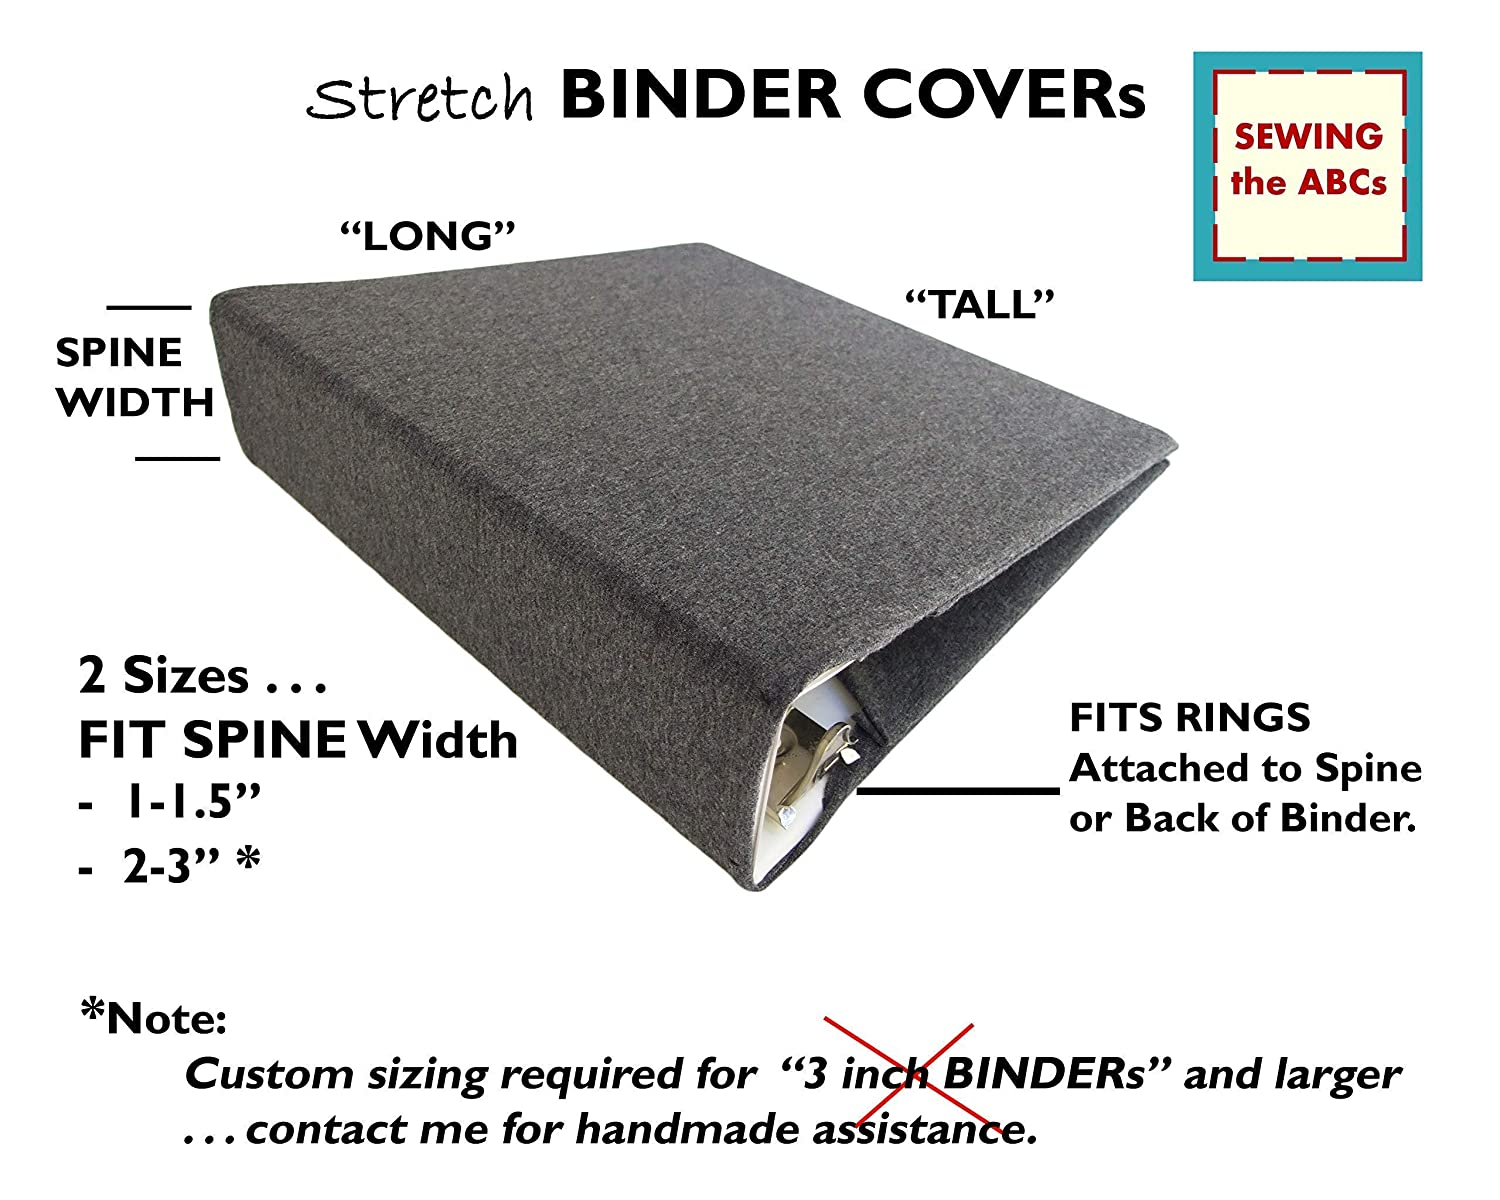 Fabric Binder Cover Stretch Binder Cover for Binder 3 Ring Decorative Binder Accessories NAVY FEATHERS Planner Binder Cover 8.5x11 Binder Cover Fabric